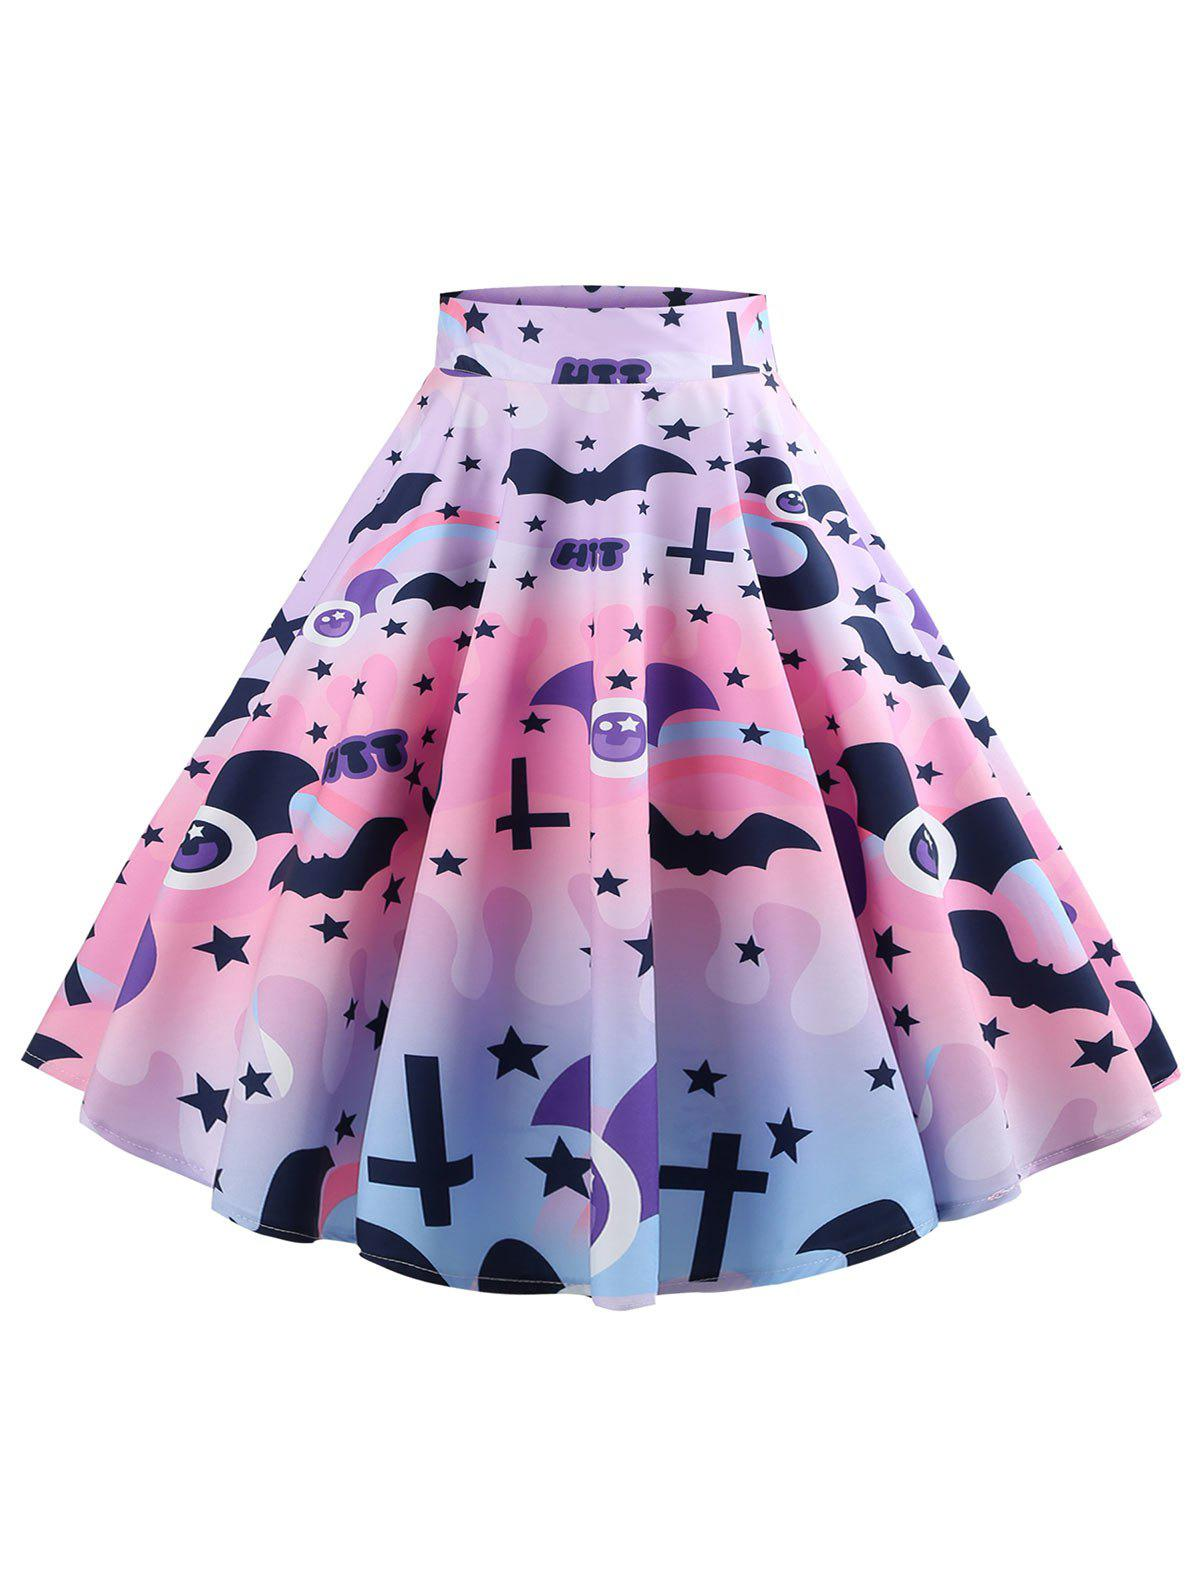 Fashion Halloween Bat and Star Print Mid Calf Skirt